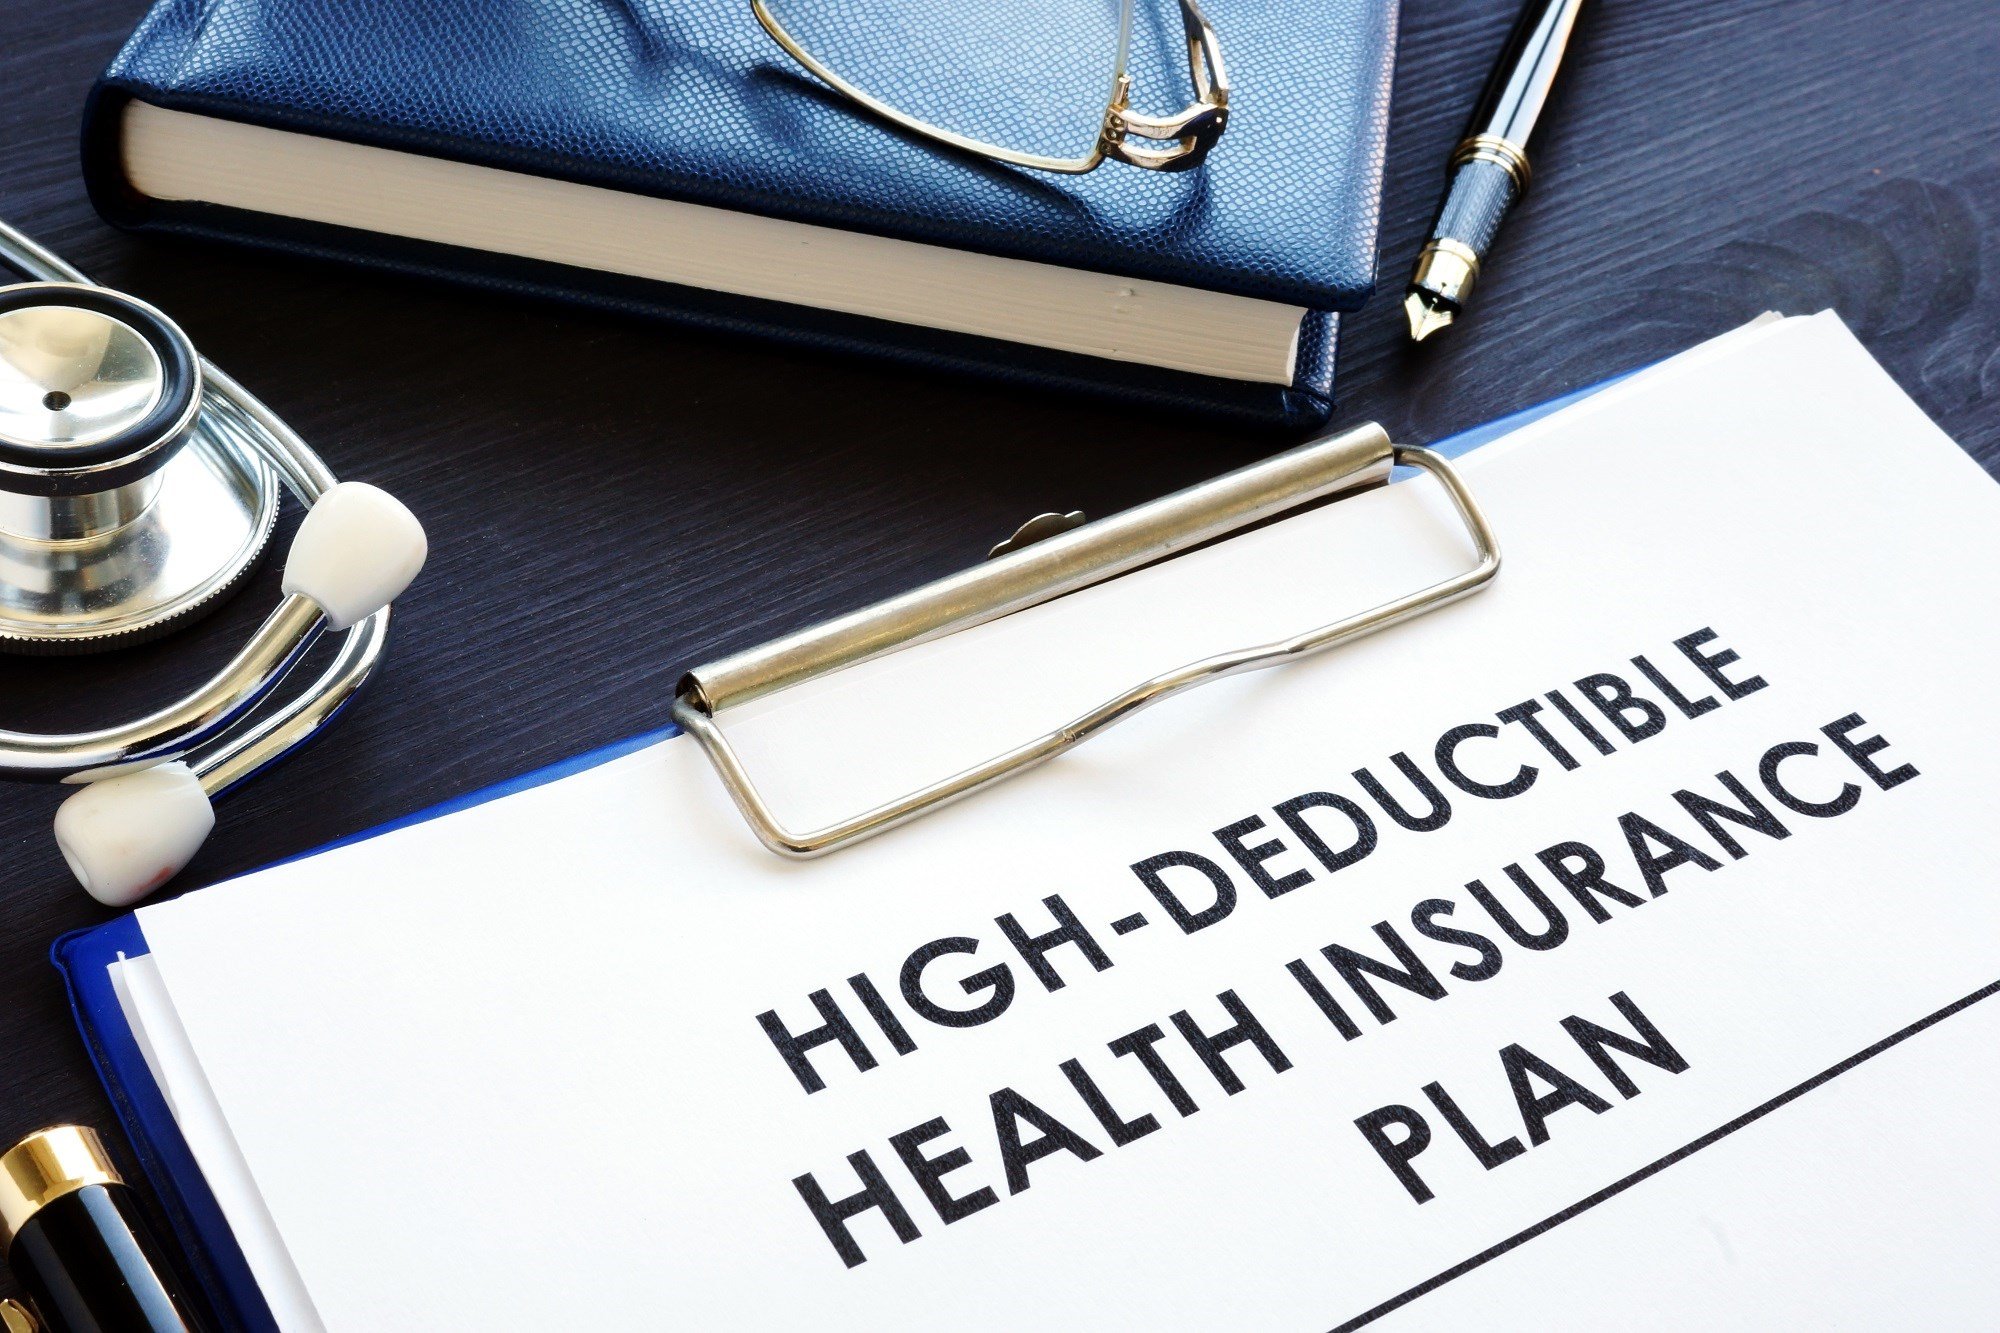 Enrollment in High-Deductible Health Plans Increase From 2007 to 2017